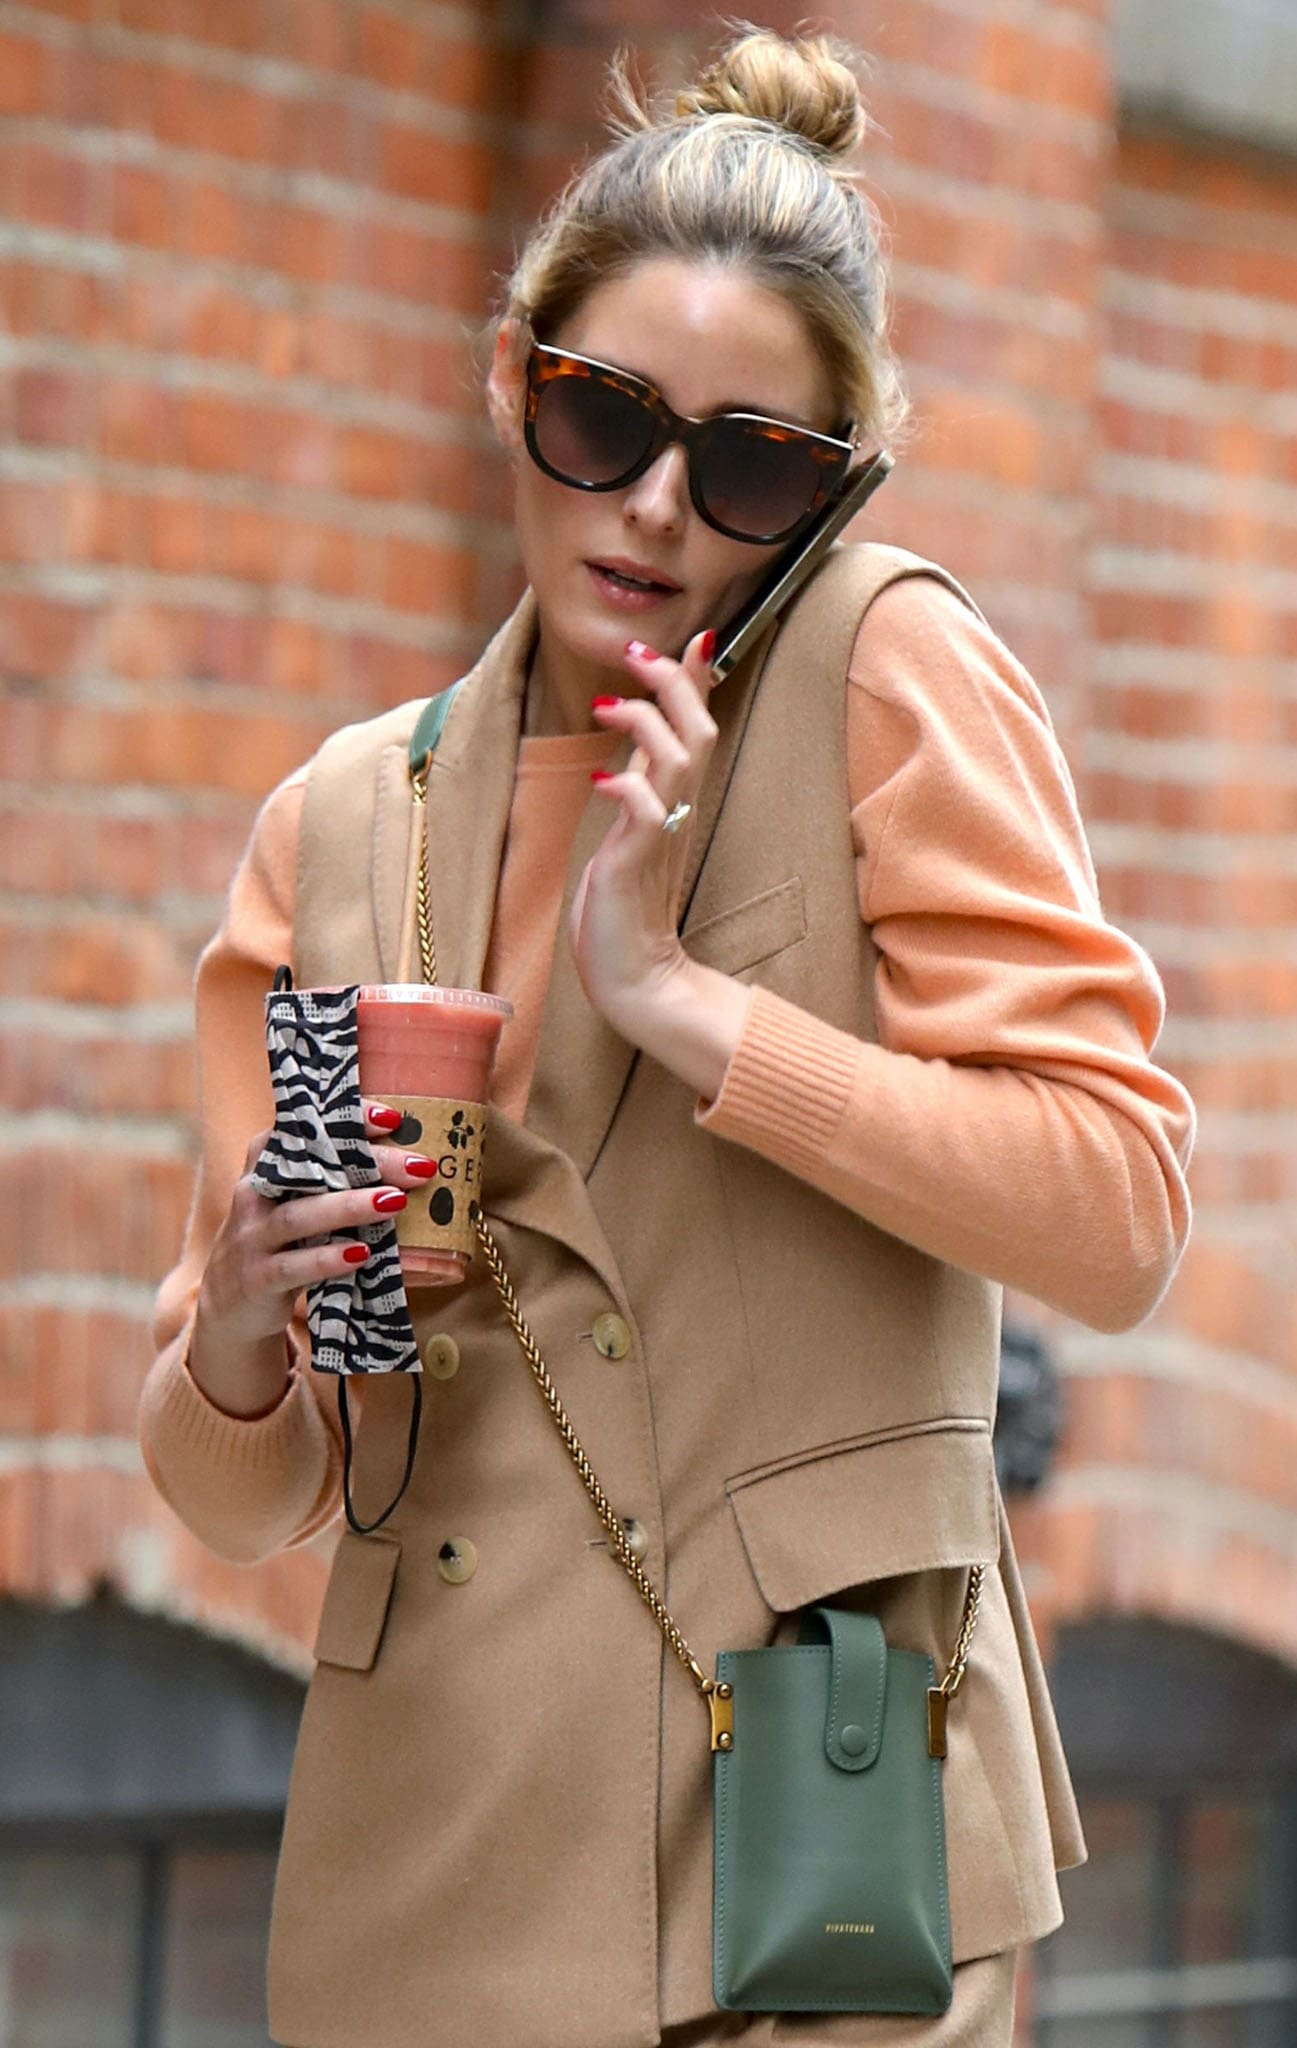 Carrying an olive green Pipatchara Pandemic Relief bag, Olivia Palermo looks chic with her high bun and tortoiseshell sunglasses